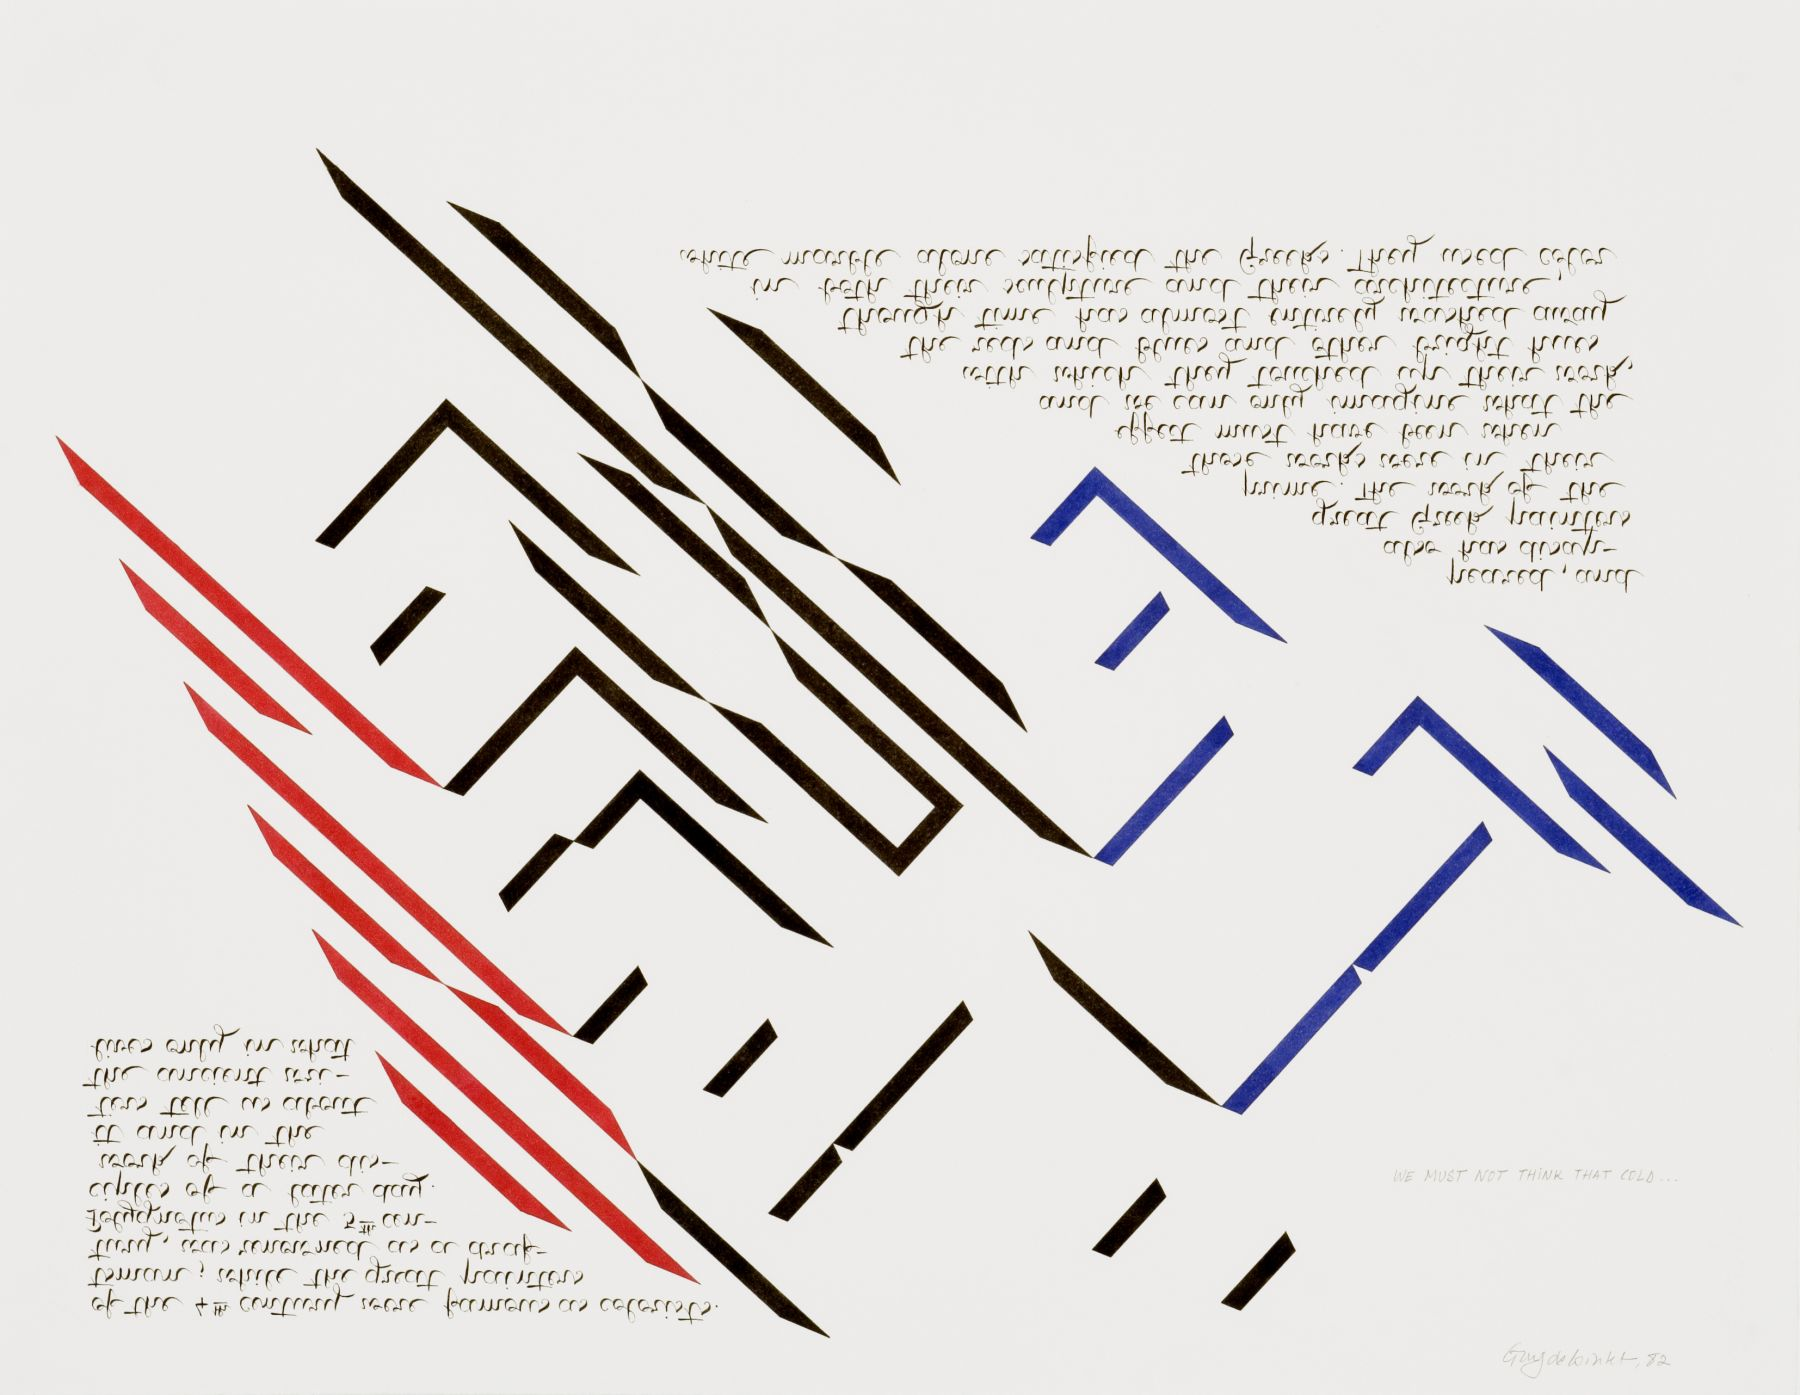 We must not think that cold..., 1982, ink and pencil on Arches paper, 19 3/4 x 25 1/2 inches